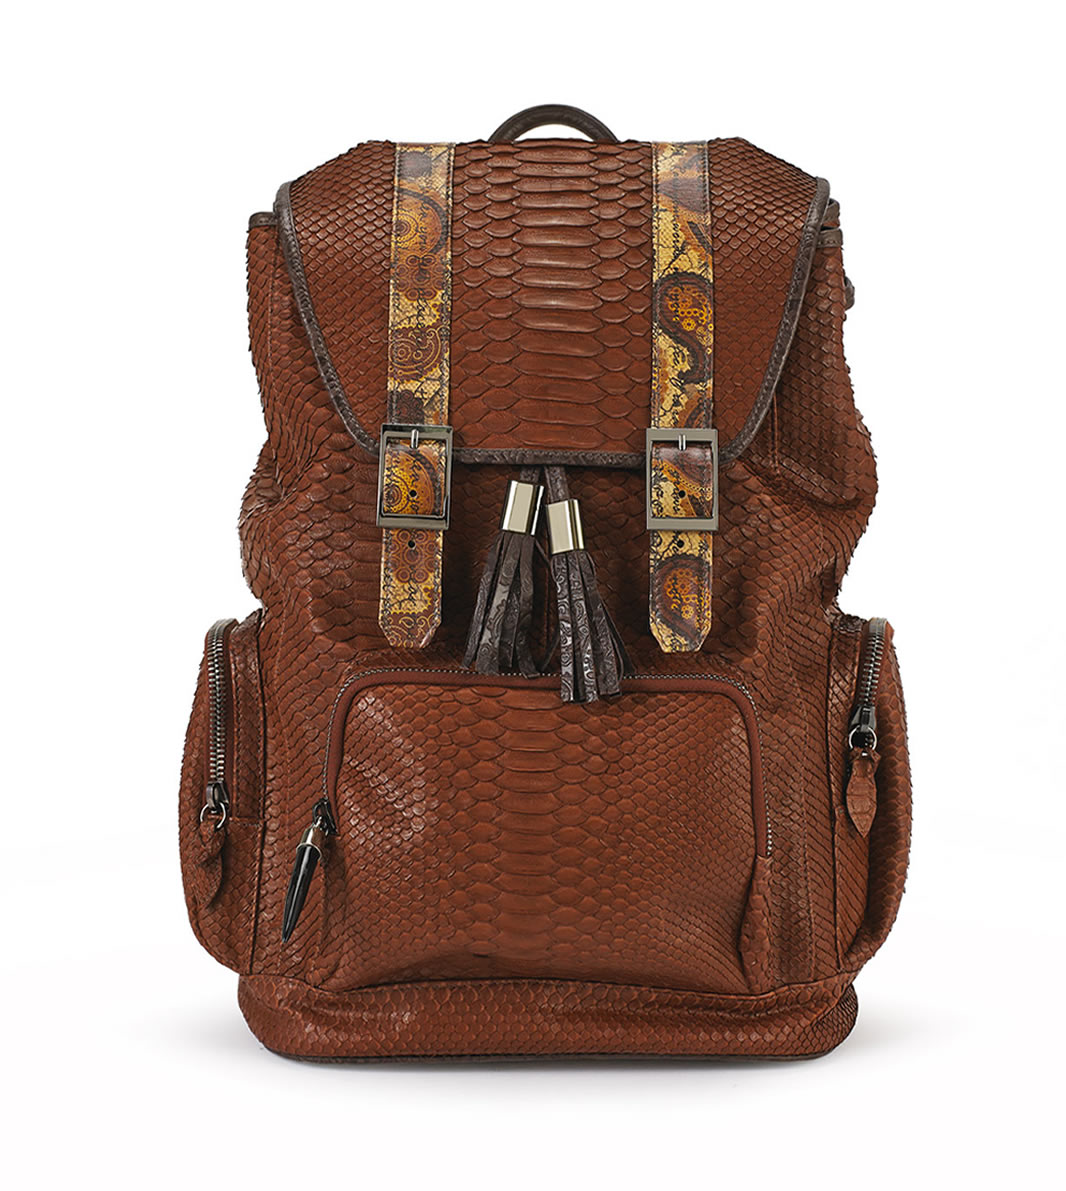 BACKPACK GOLDEN BROWN  COGNAC PYTHON